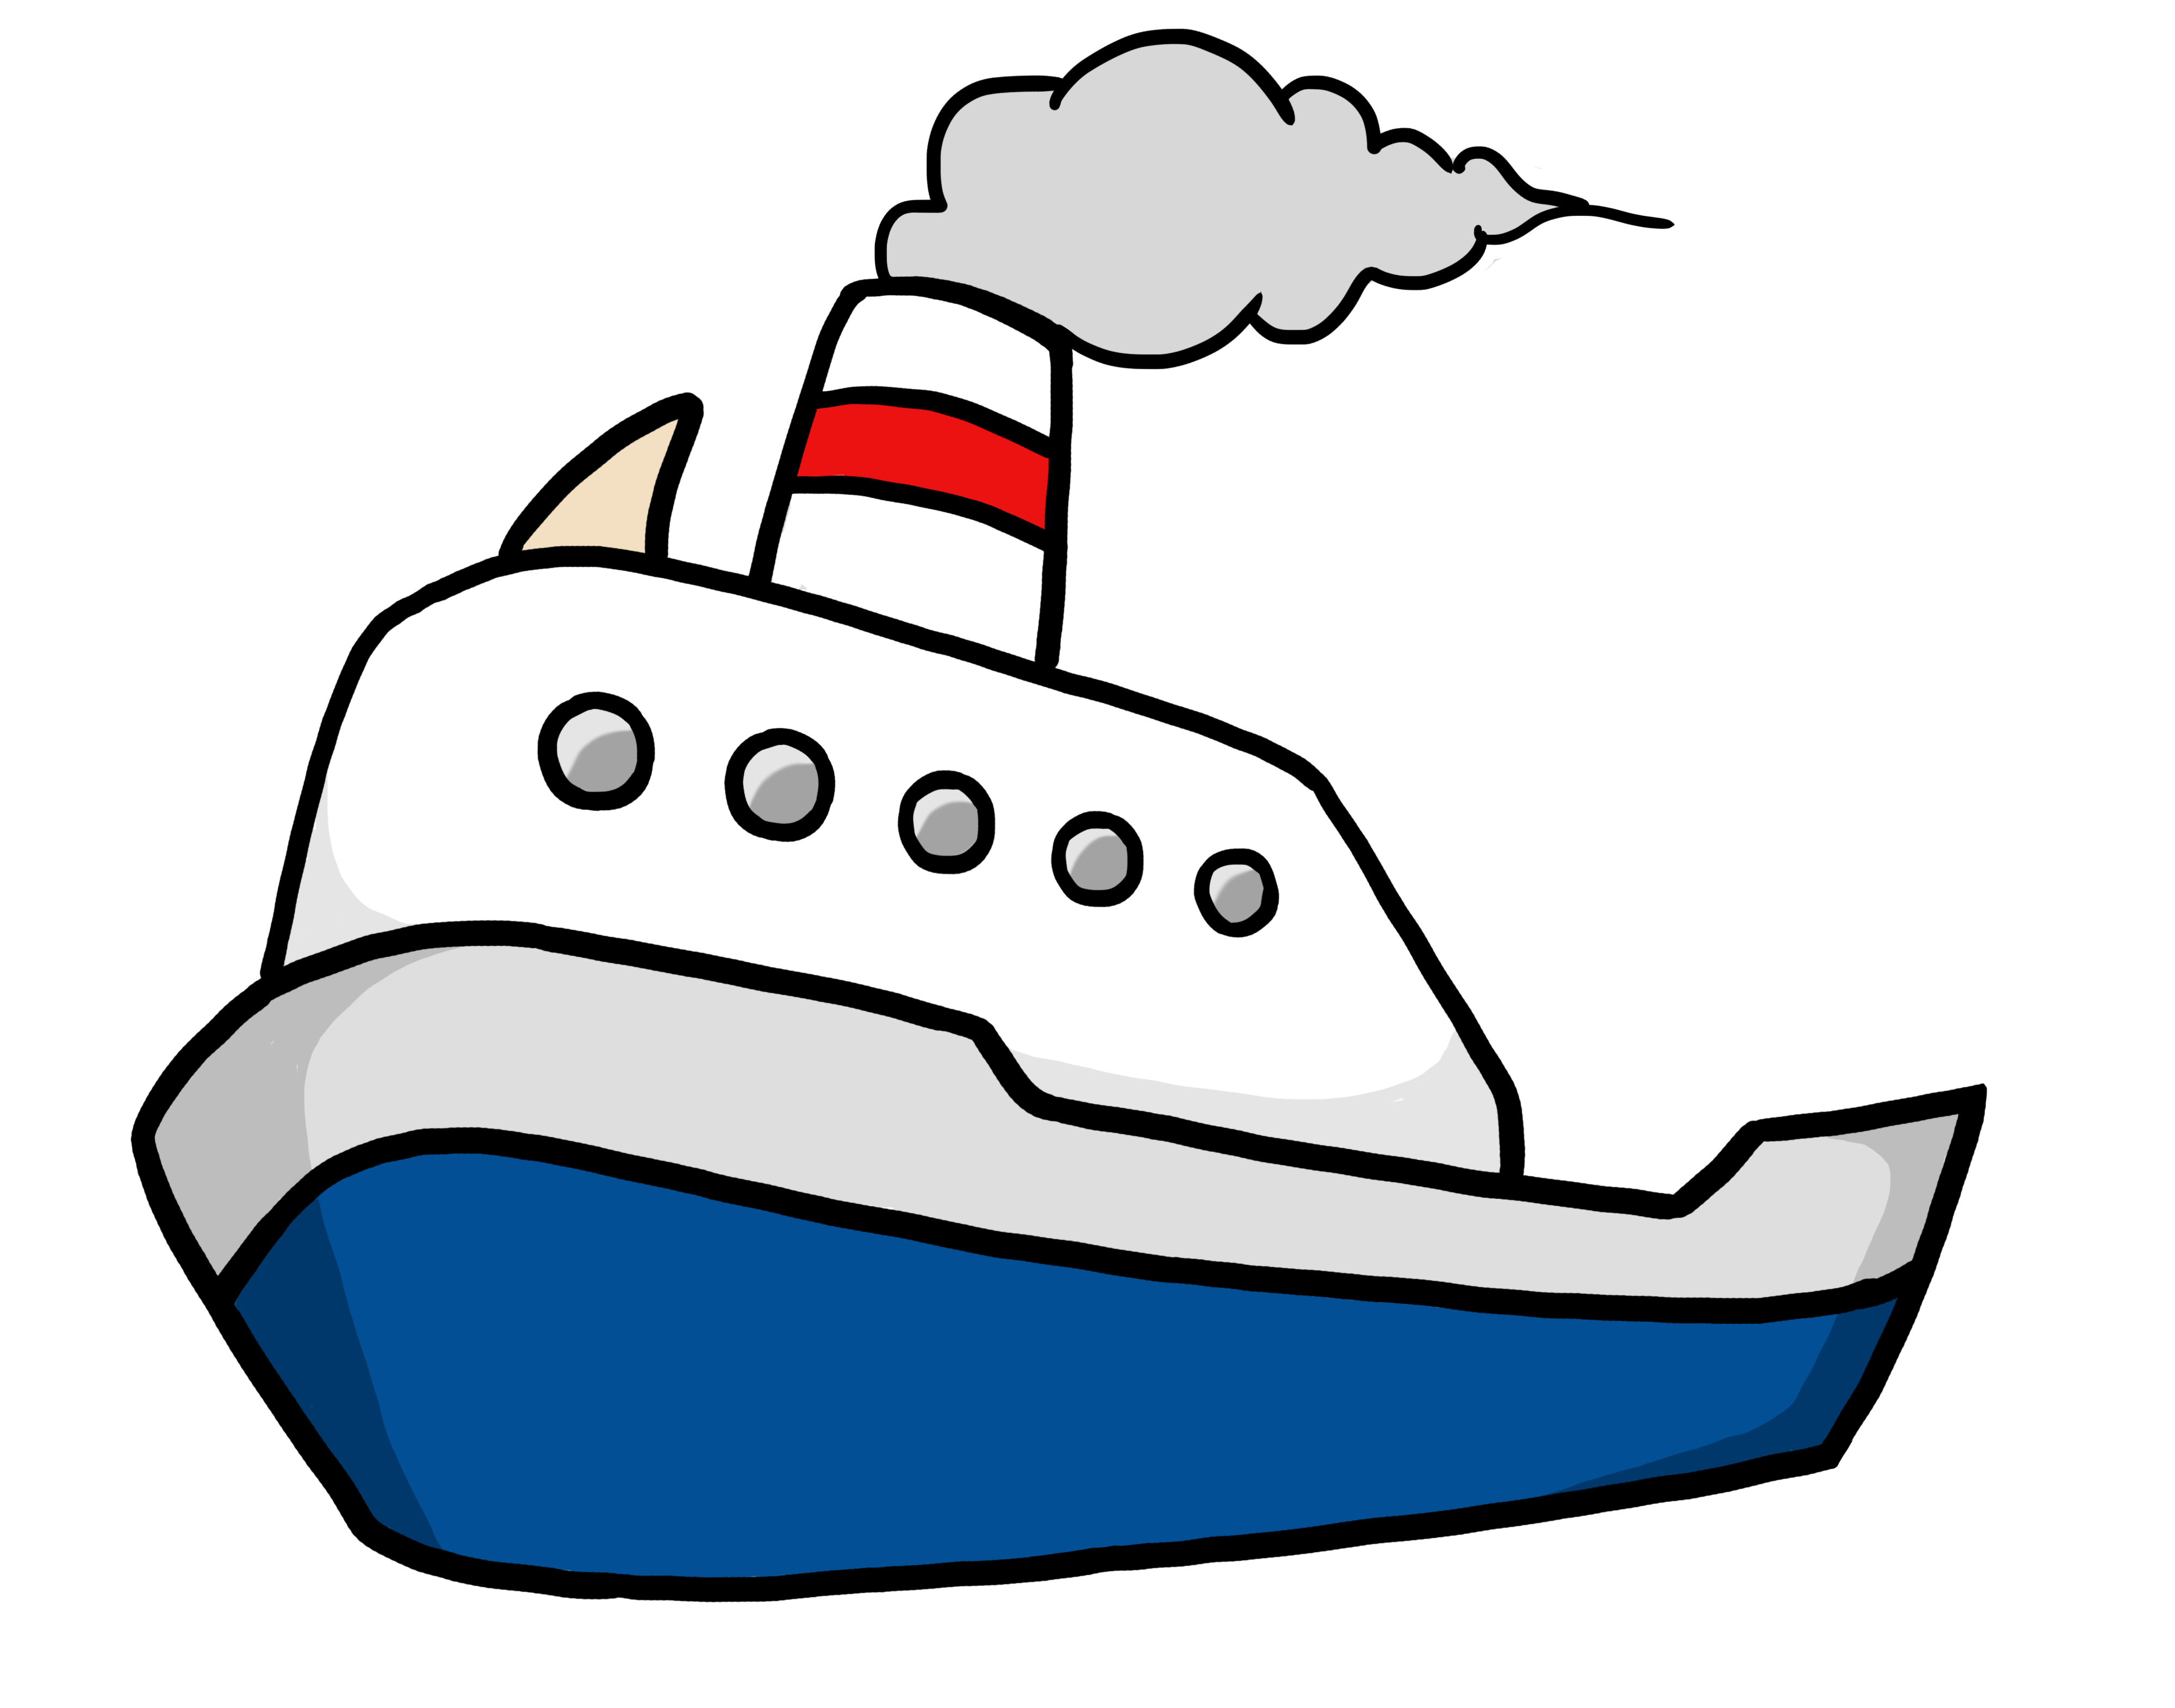 Shipping Clipart-Shipping Clipart-10